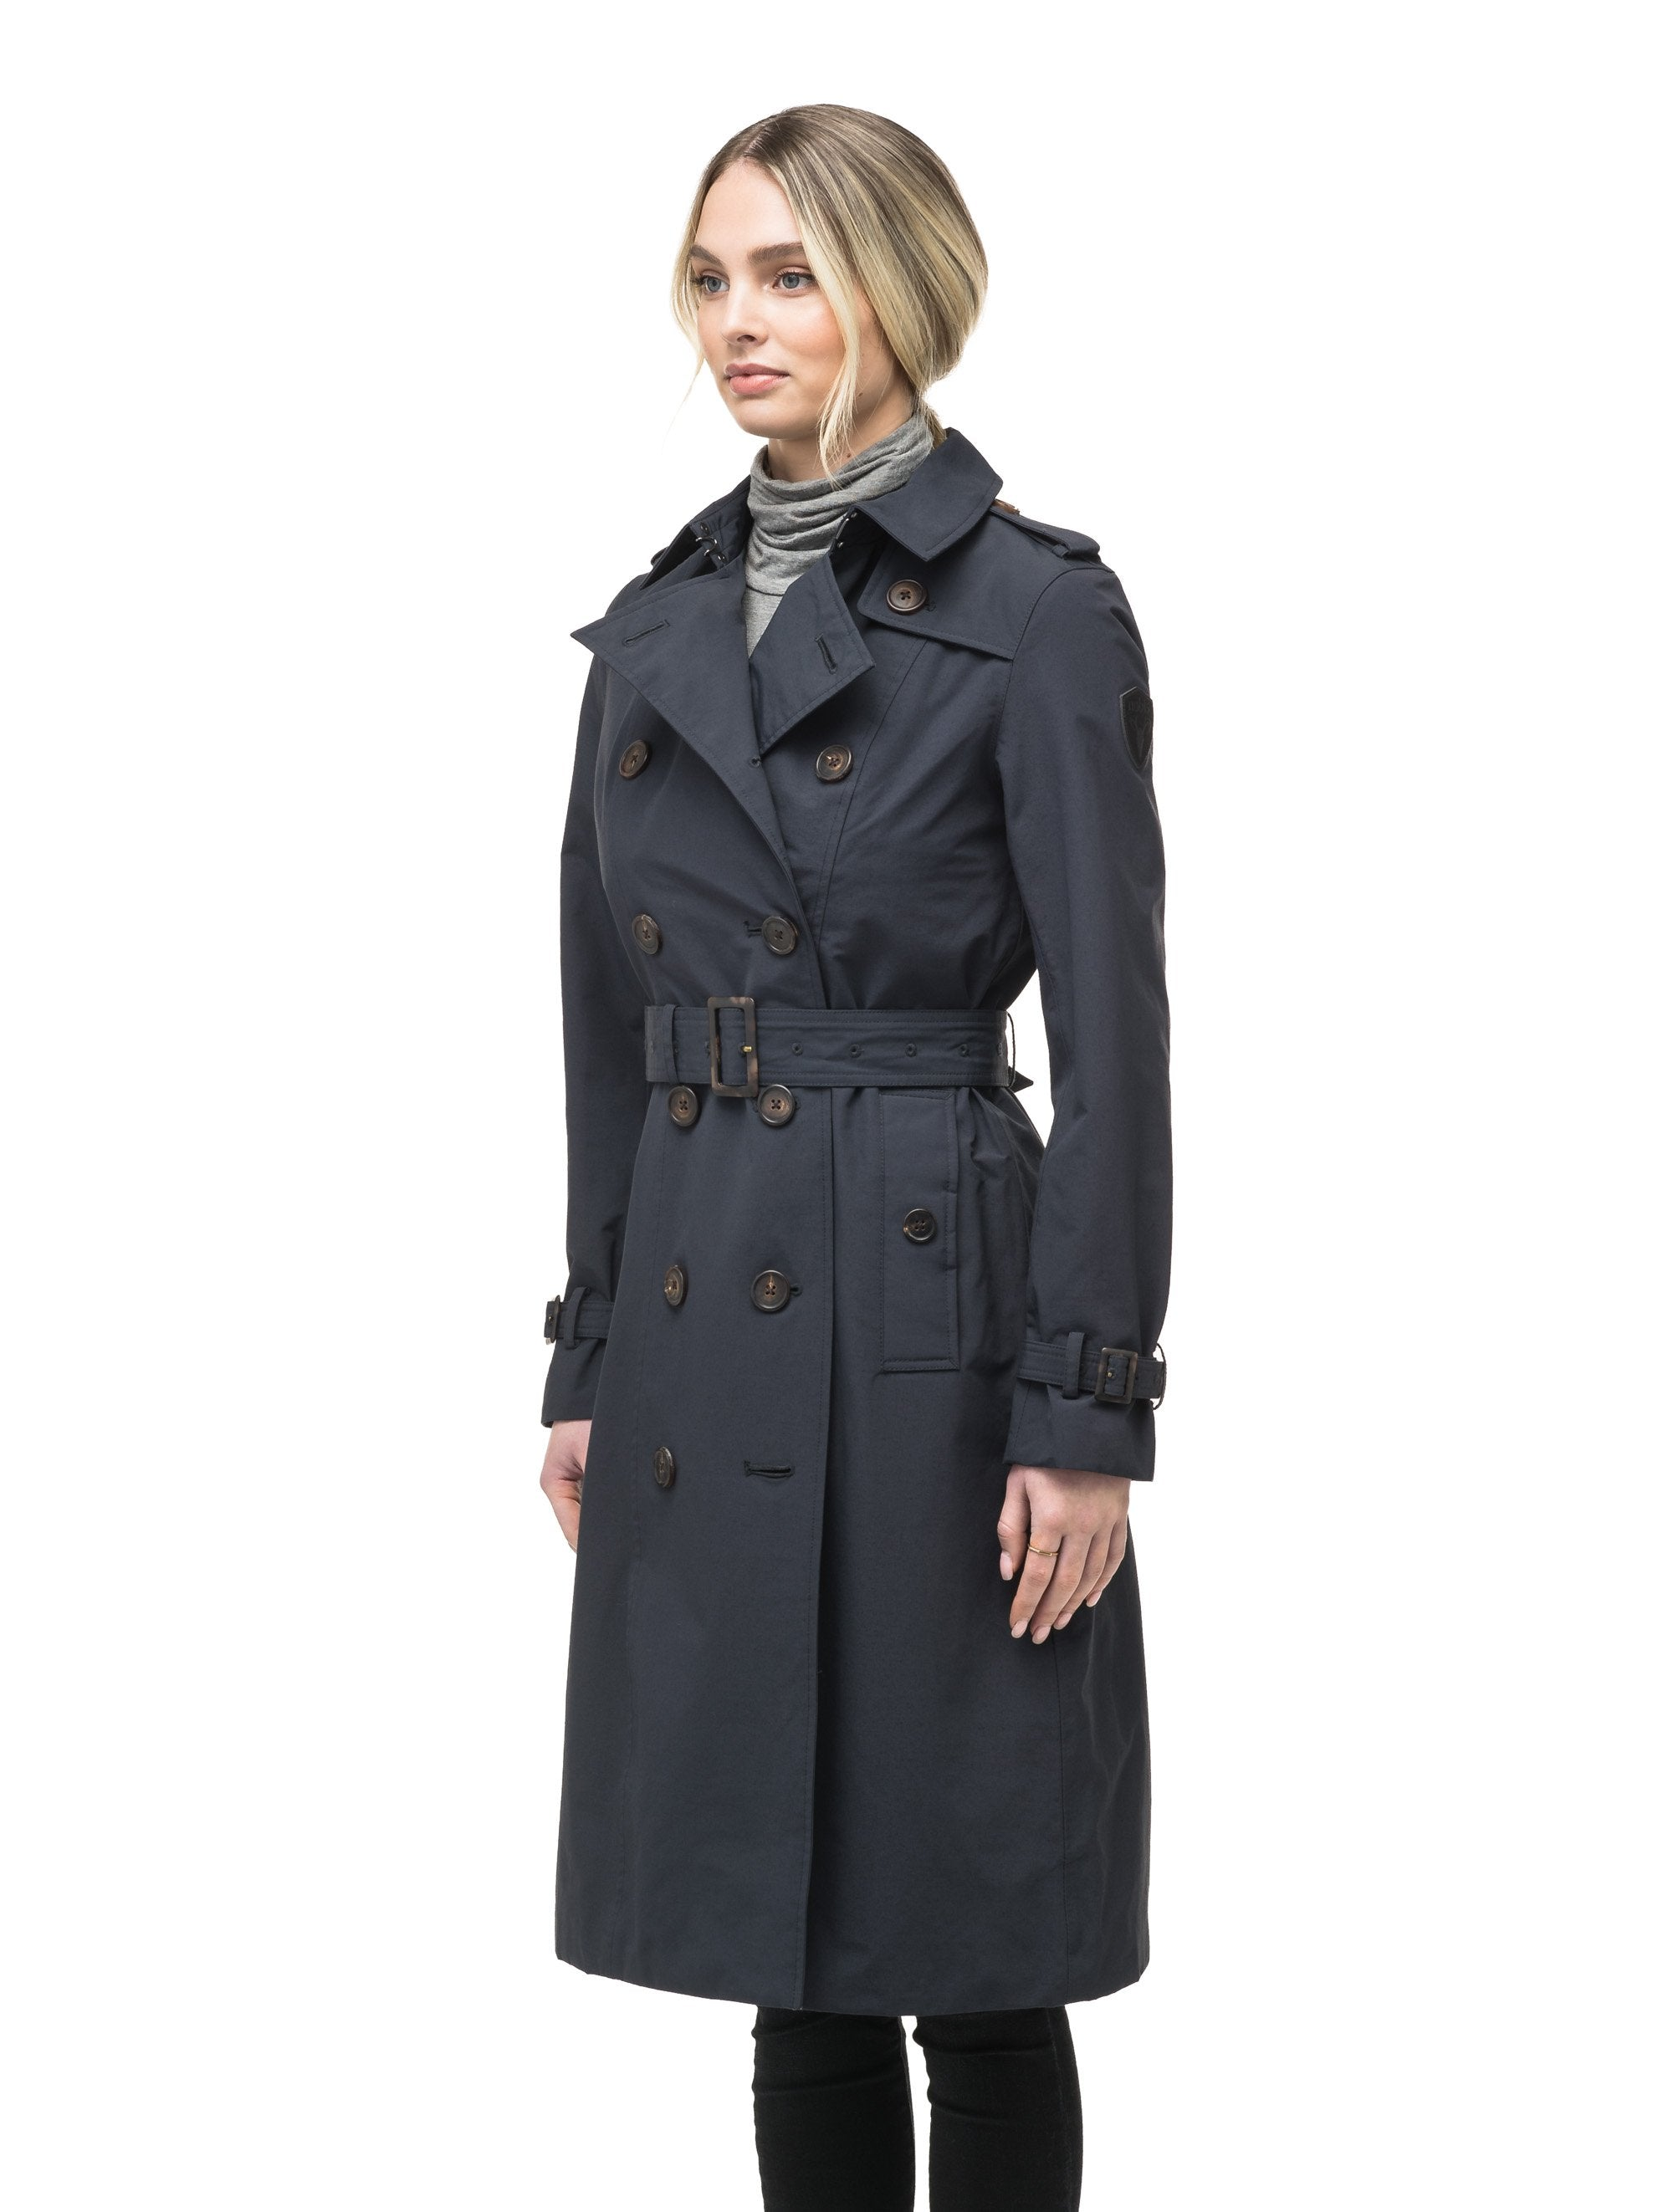 Women's knee length trench coat with removable belt in Navy | color